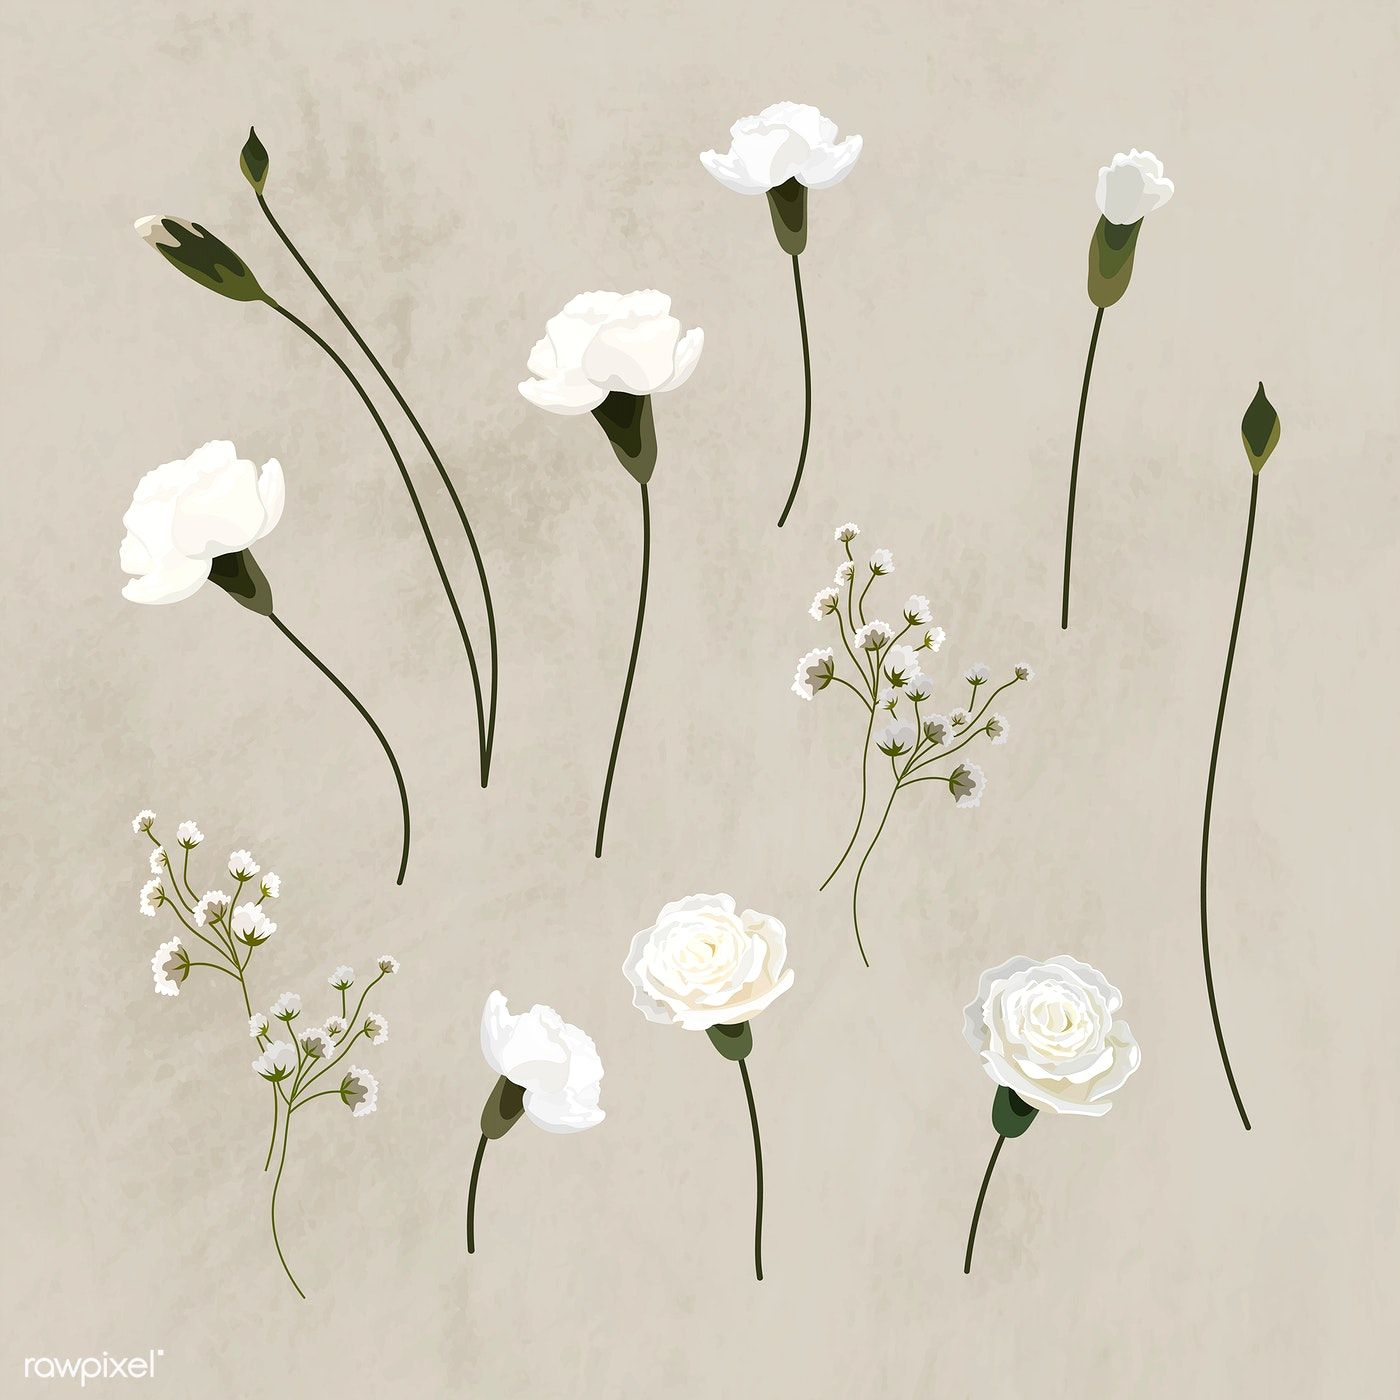 Blooming White Carnation Design Element Collection Vector Free